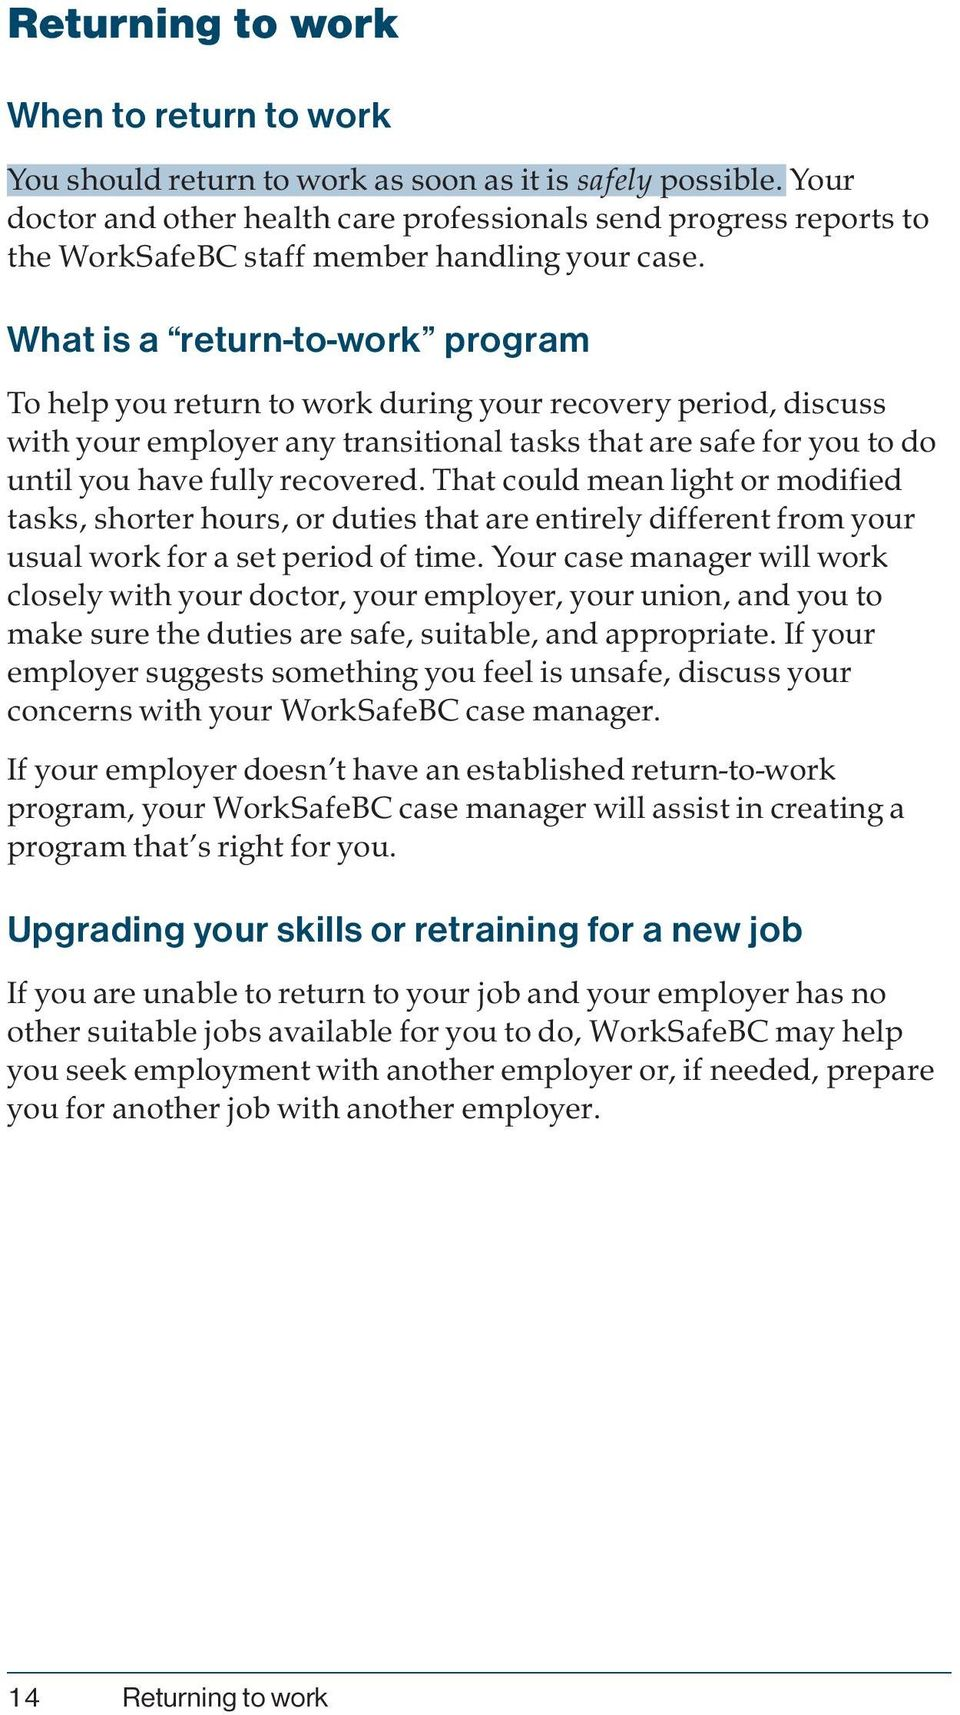 What is a return-to-work program To help you return to work during your recovery period, discuss with your employer any transitional tasks that are safe for you to do until you have fully recovered.